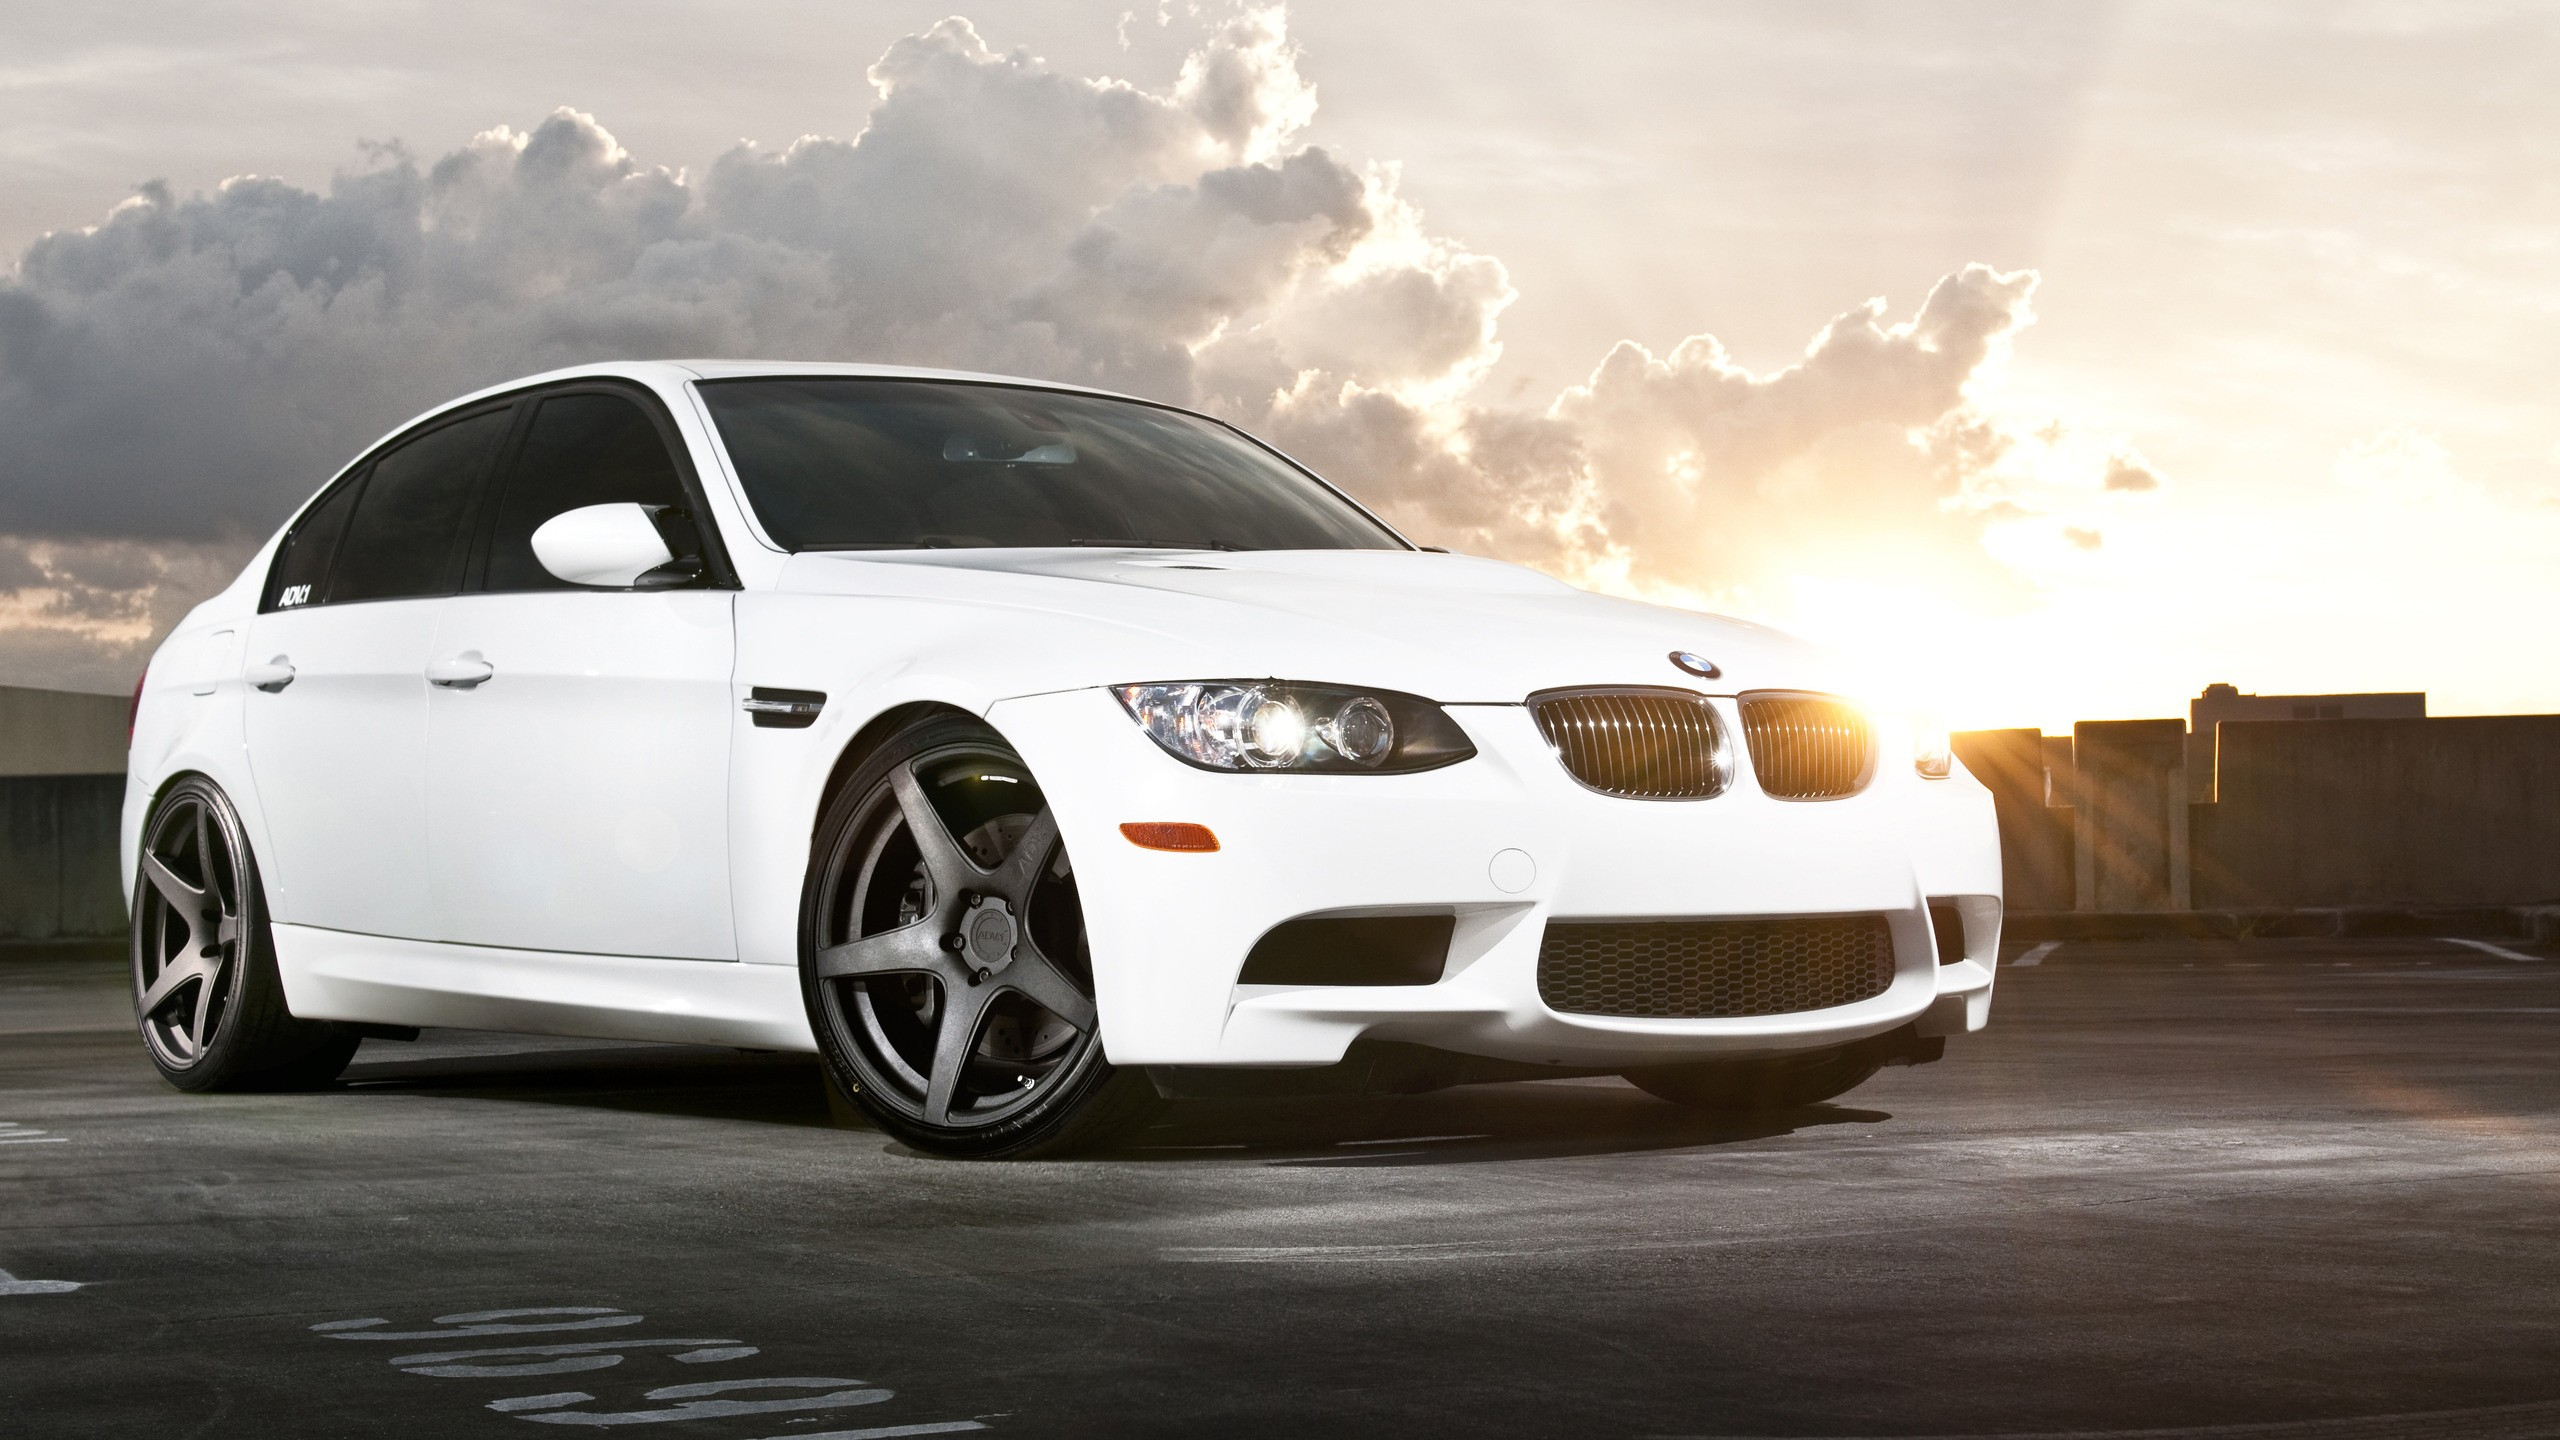 Free Download Bmw Wallpaper Hd 2560x1440 Image 431 2560x1440 For Your Desktop Mobile Tablet Explore 92 Bmw Hd Wallpapers Hd Bmw Wallpapers Bmw Hd Wallpaper Bmw Wallpapers Hd